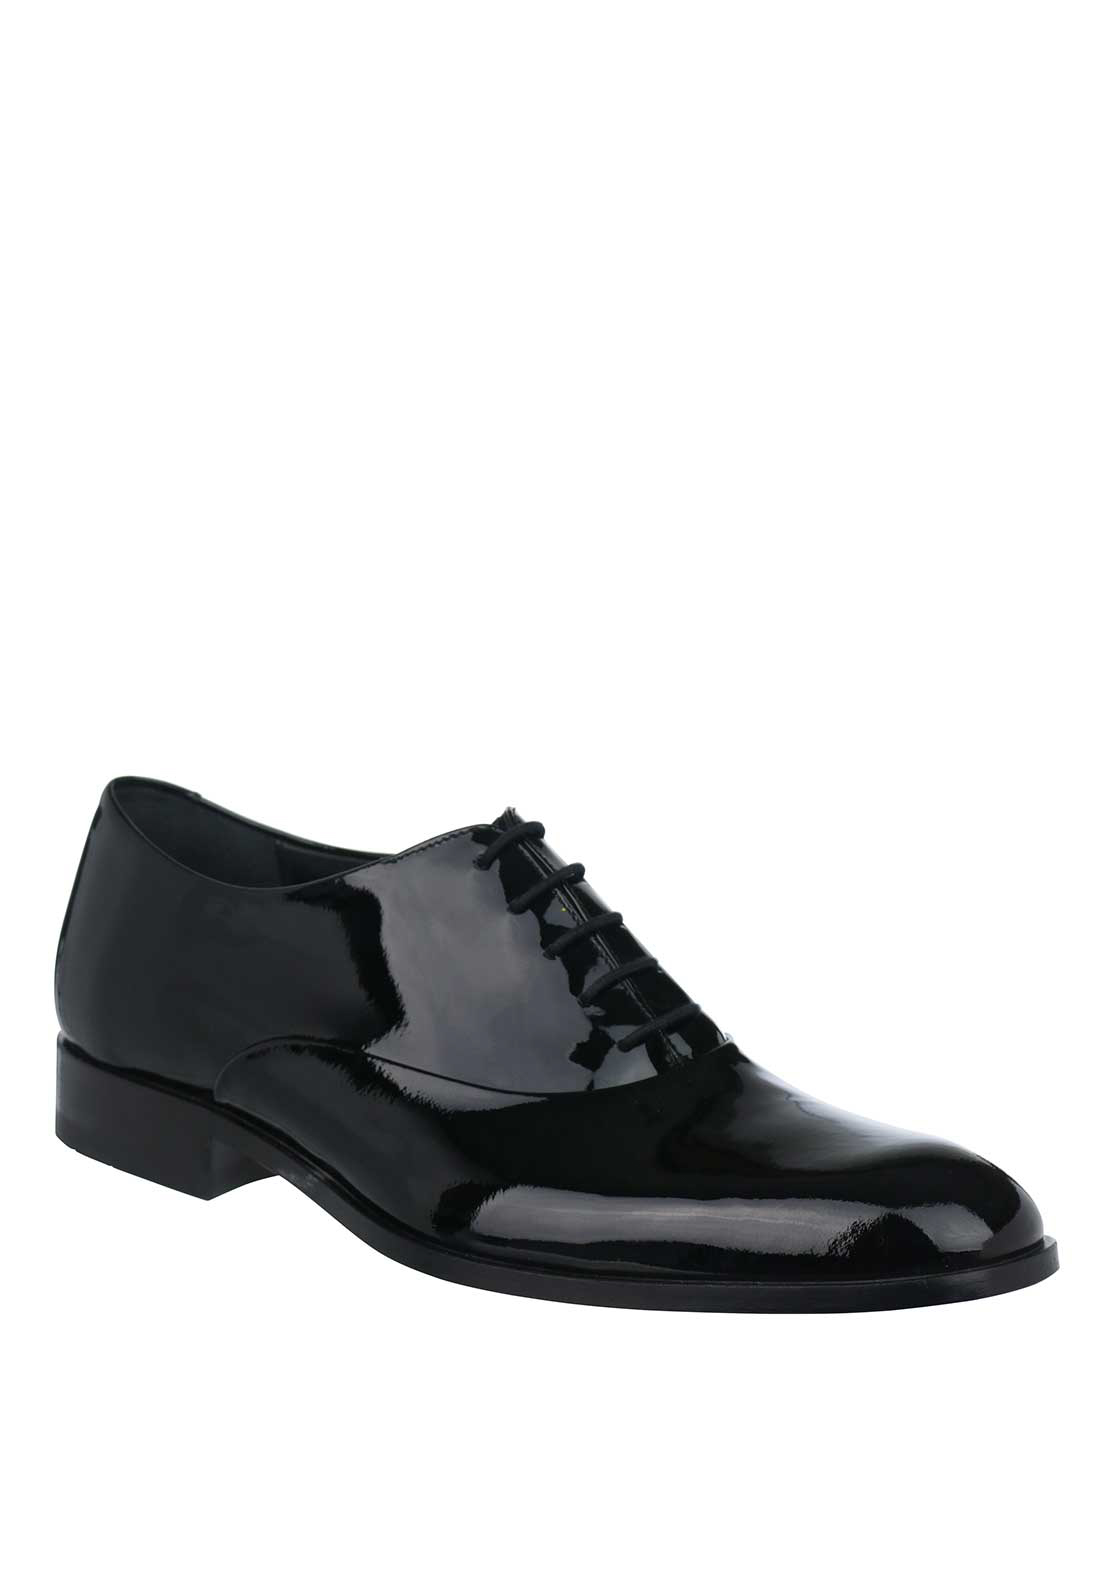 Loake Patent Leather Lace Up Formal Shoe, Black